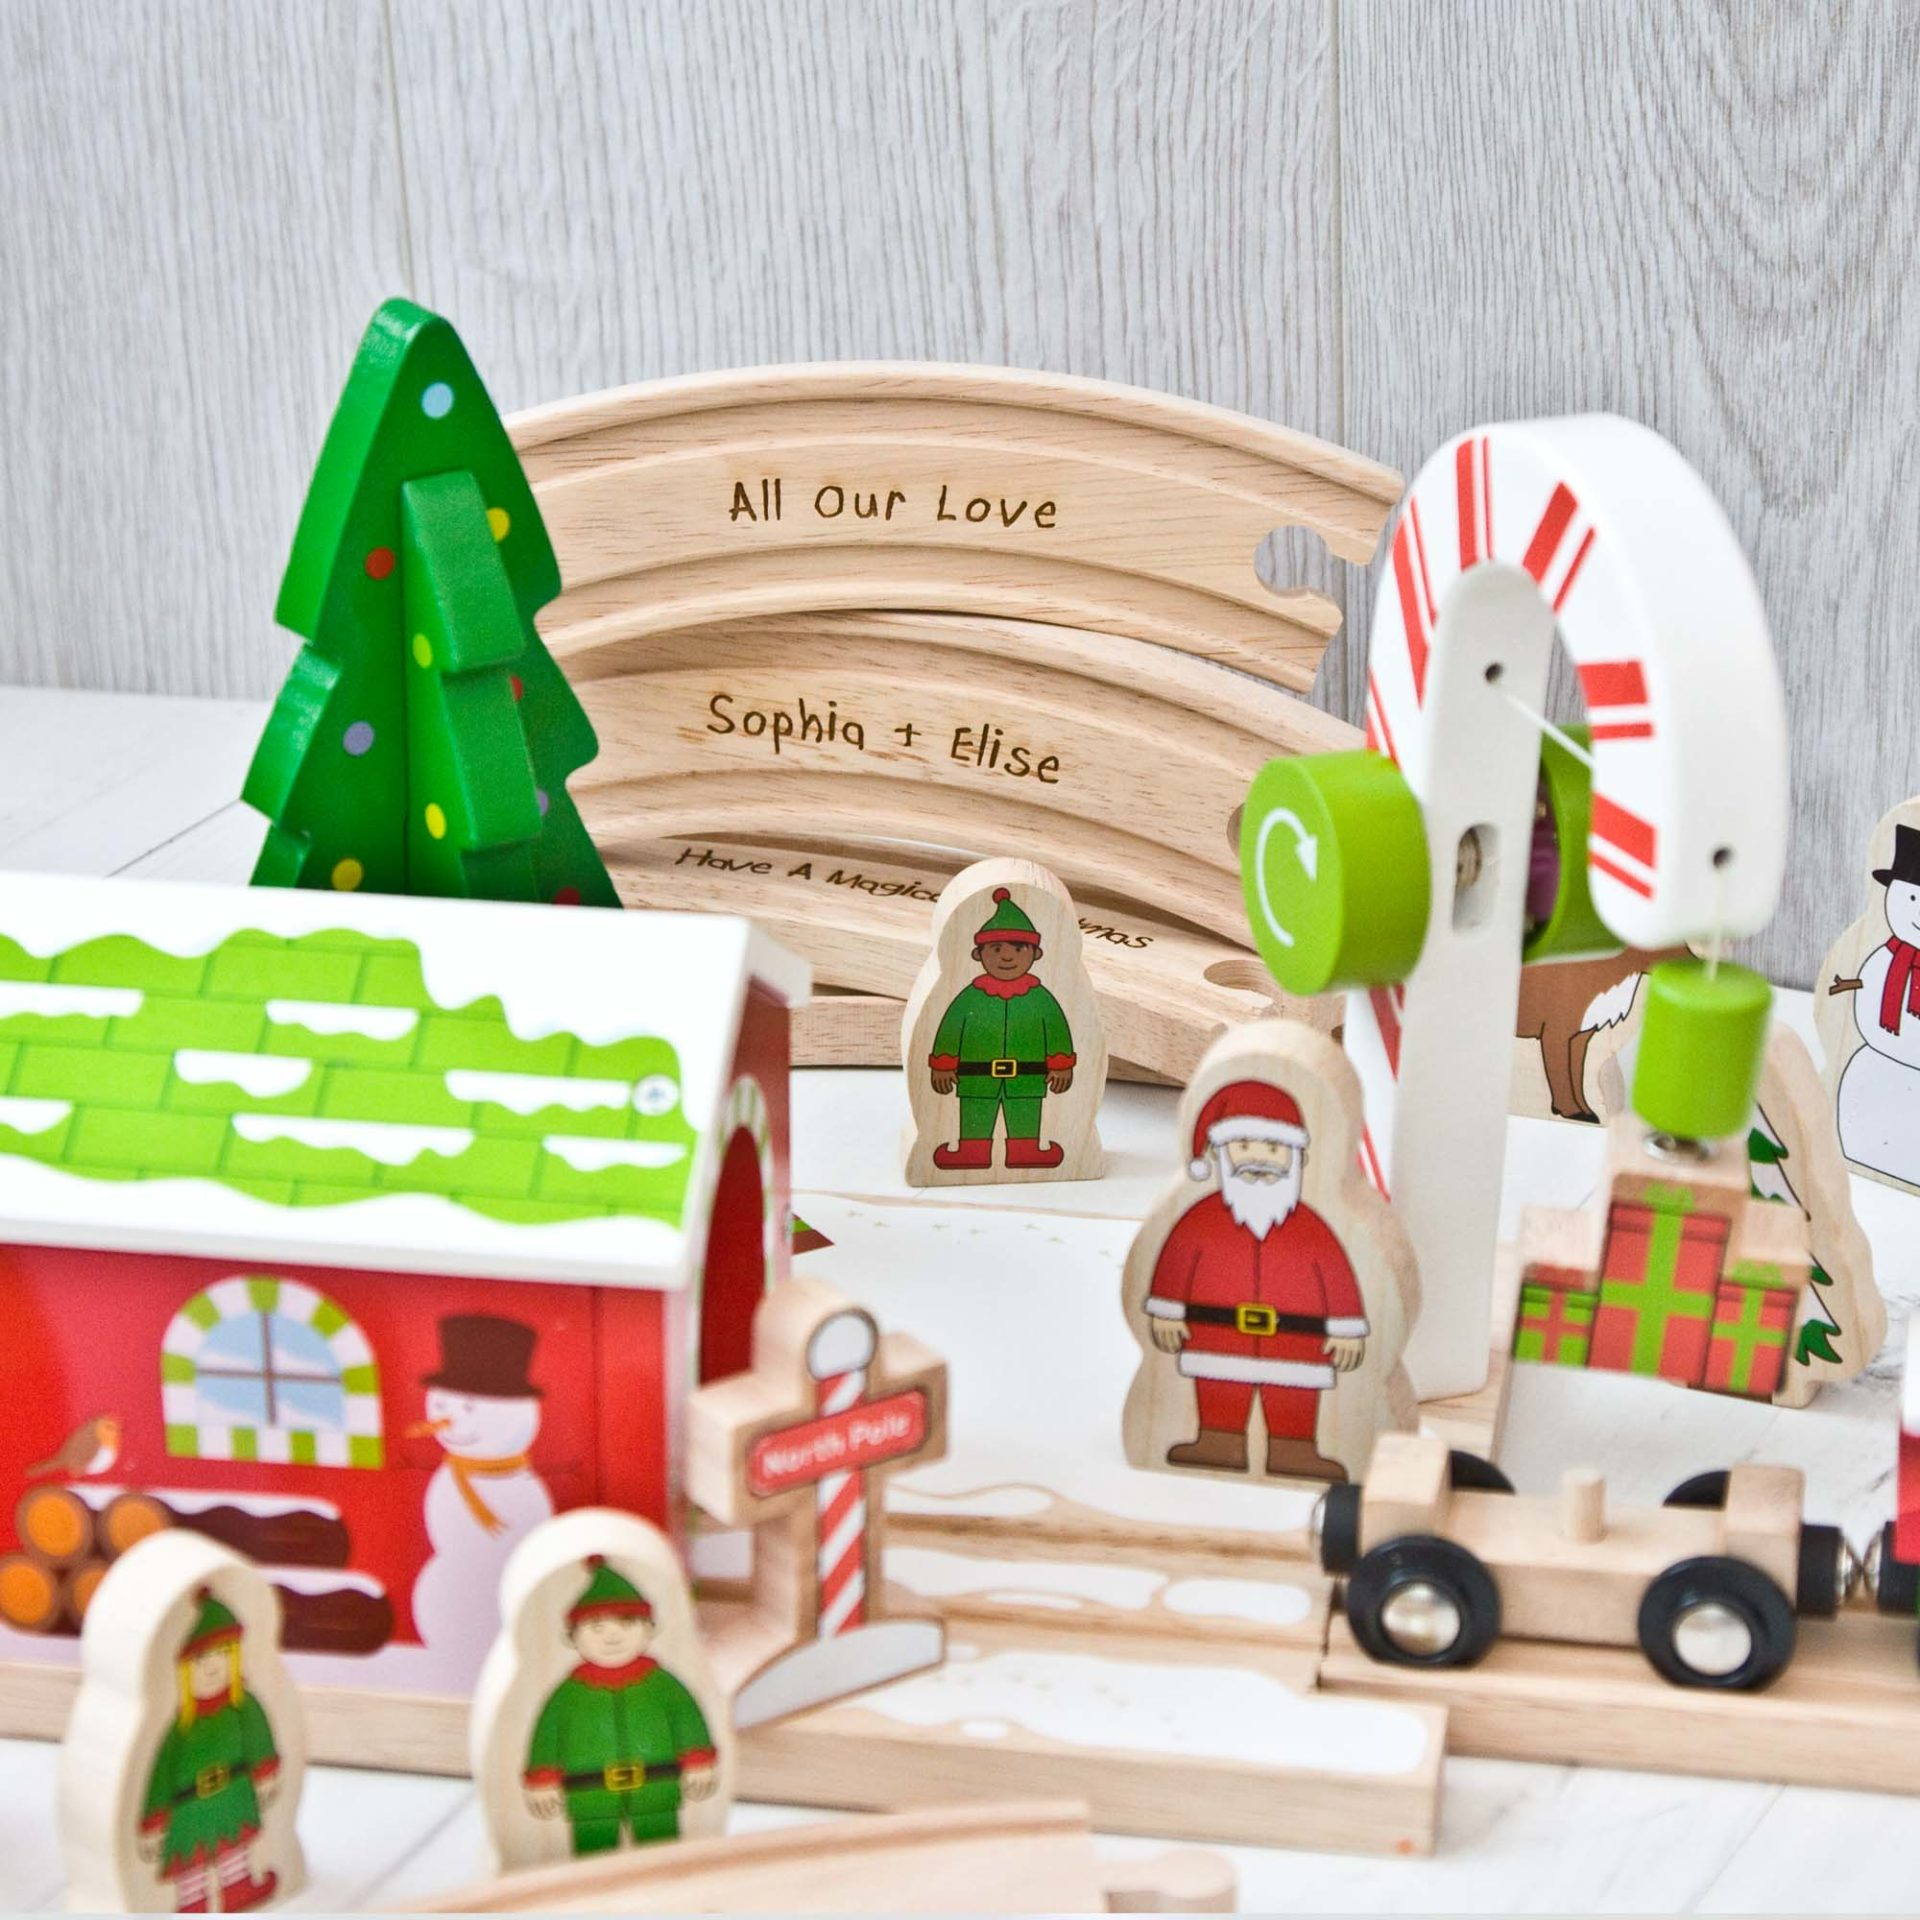 Superb Winter Wonderland Wooden Train Set Machost Co Dining Chair Design Ideas Machostcouk